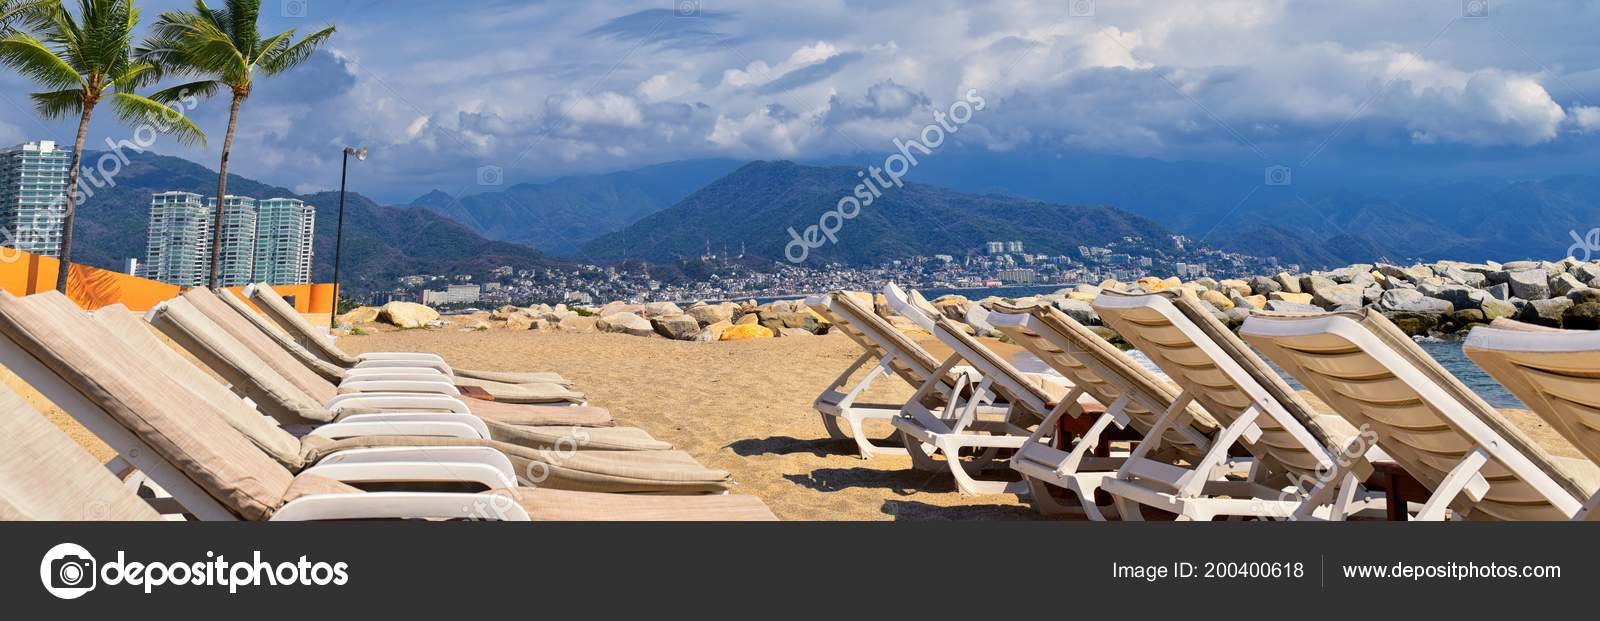 Blue Chairs Puerto Vallarta Beach City Ocean View Puerto Vallarta Mexico Beach Chairs